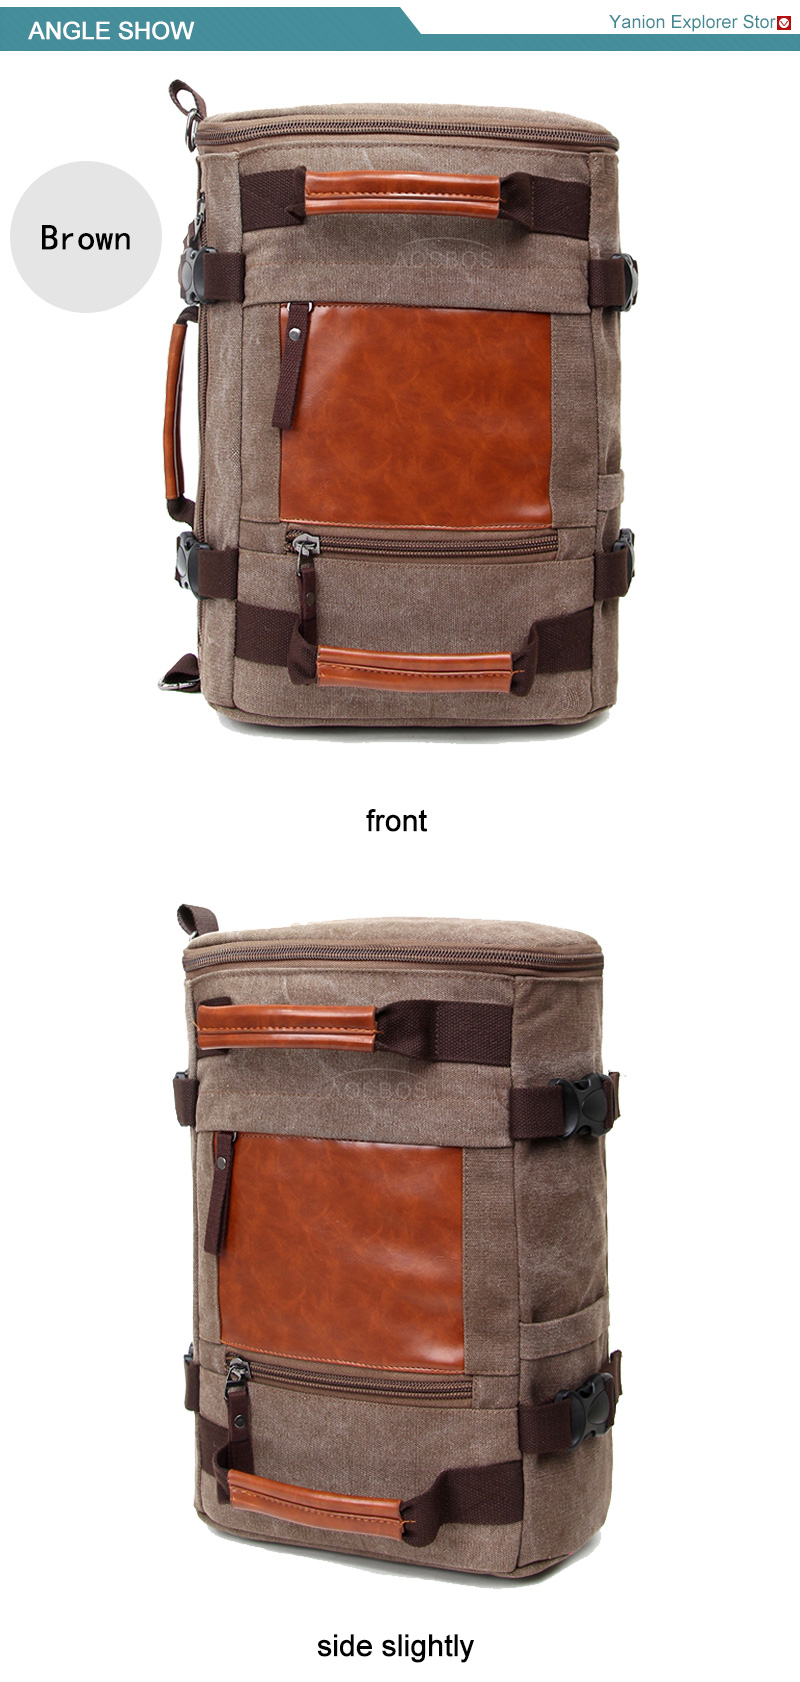 Aosbos 2017 Vintage Canvas Gym Bag Men Women Training Fitness Bags Outdoor Traveling Sports Bag Durable Multifunctional Handbag